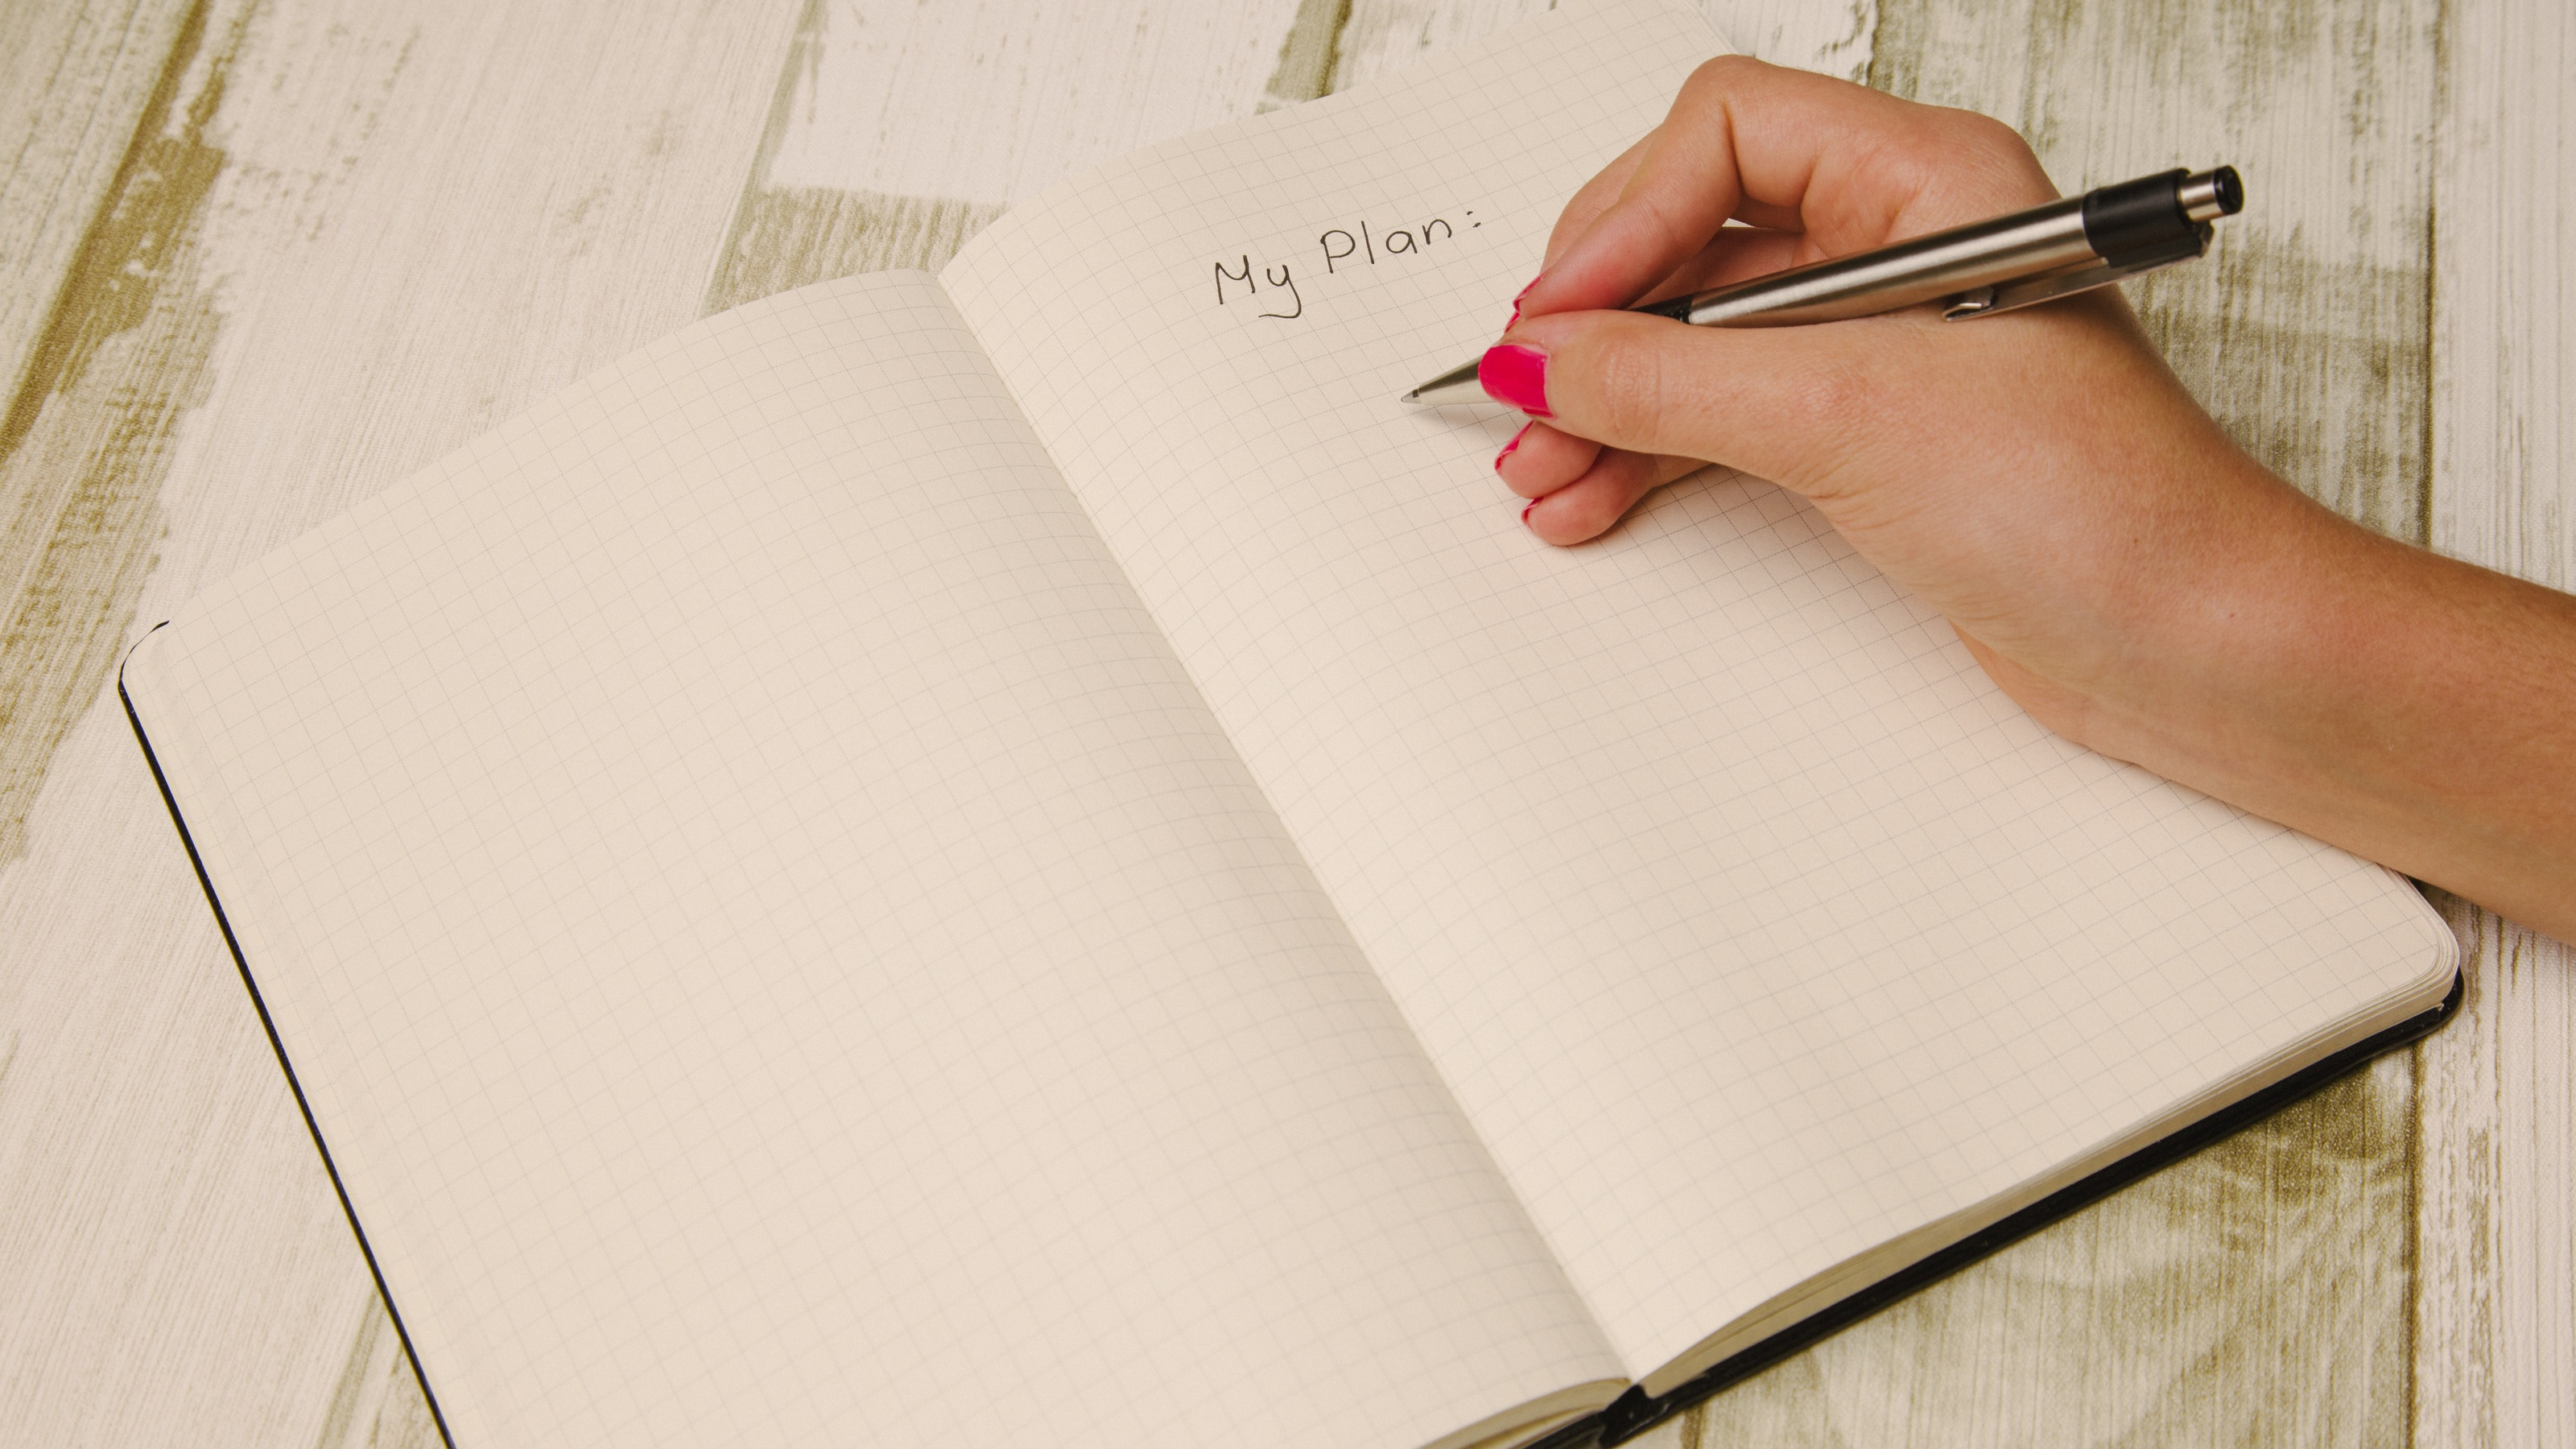 A hand writing 'My Plan' in a blank book.